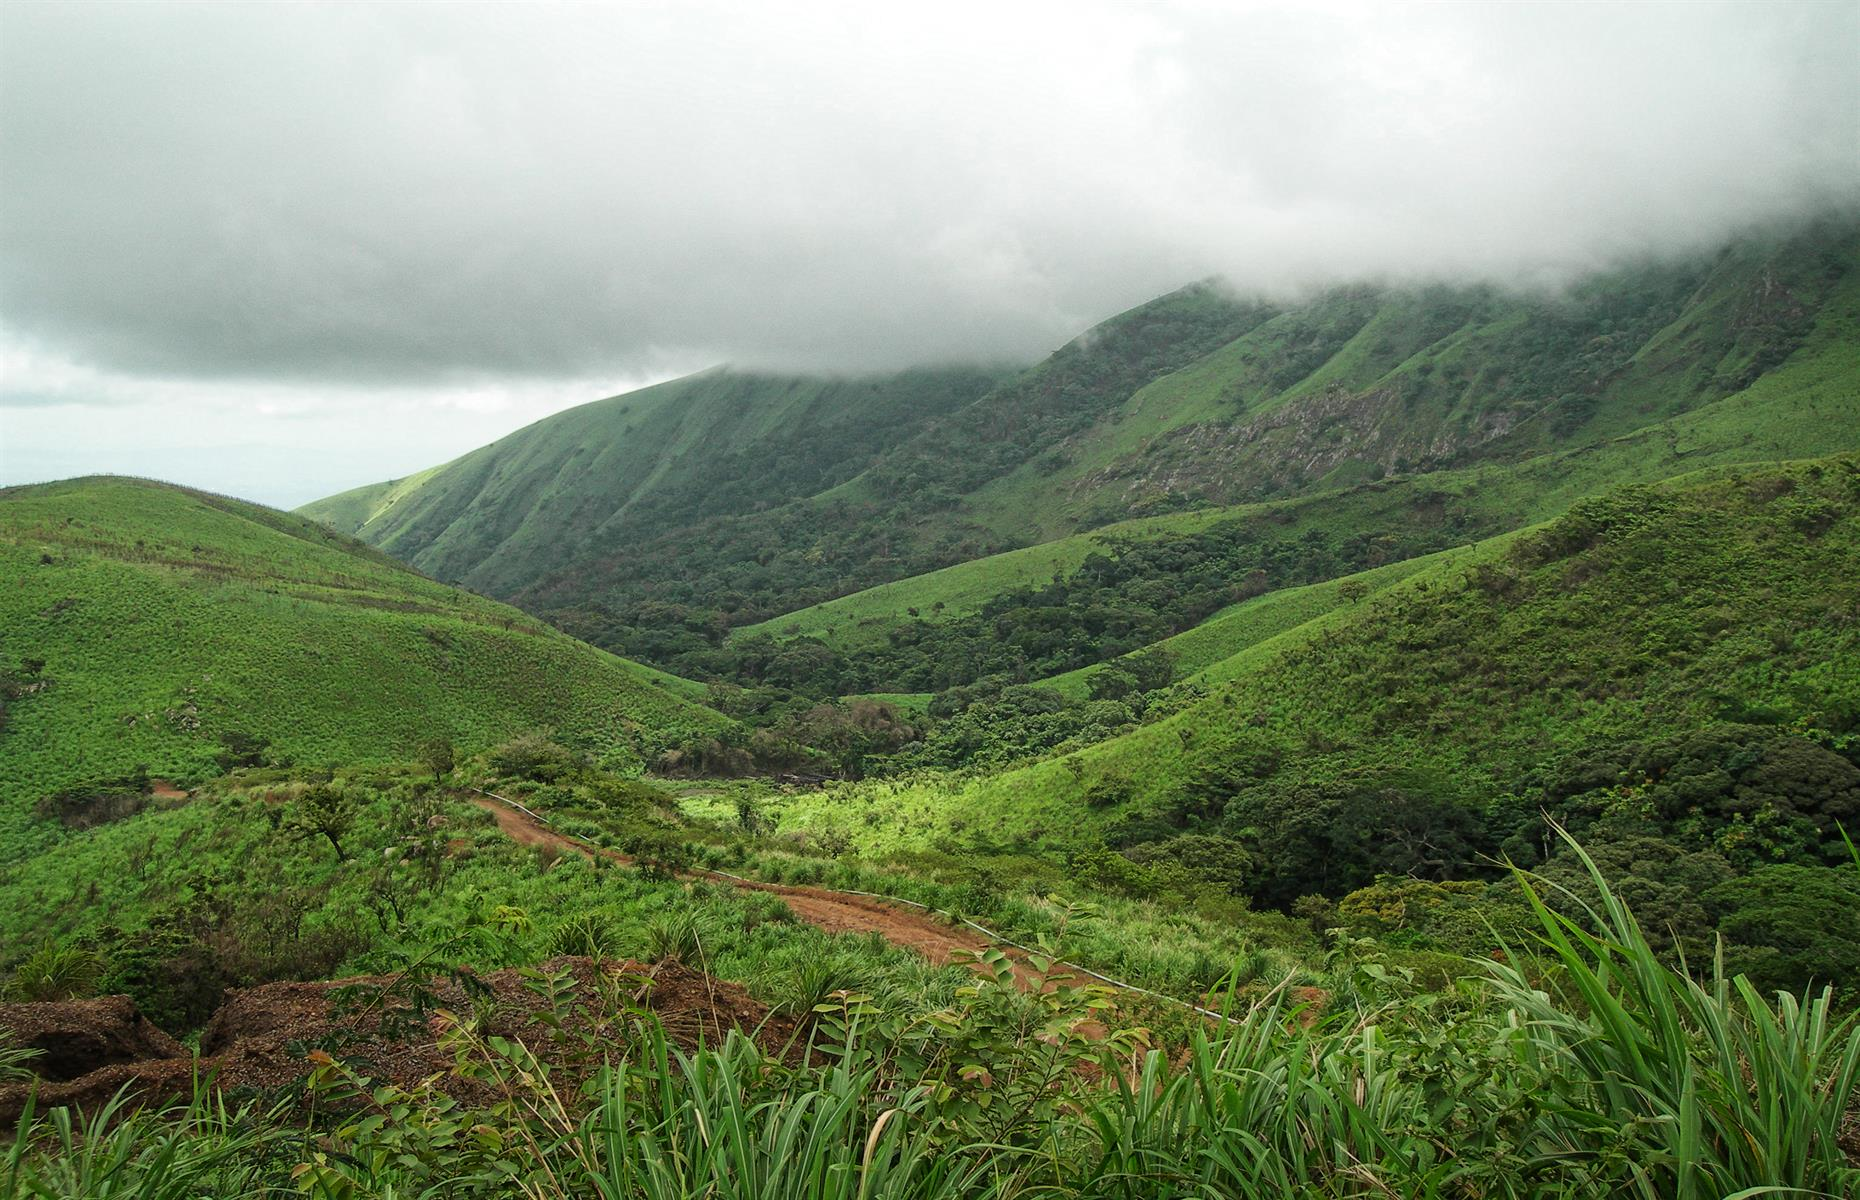 Slide 7 of 53: A UNESCO Biosphere Reserve for both Guinea and Côte d'Ivoire, Mount Nimba's slopes are draped in dense forest. These grassy mountain pastures harbor many extraordinary species, including the endemic viviparous toad and chimpanzees that use stones as tools. The reserve faces numerous pressures to its boundaries, caused by the neighboring populations and increased demographic pressure. Intense poaching and the traditional practice of clearing land for agriculture by fire have increased. Both Guinea and Côte d'Ivoire are working to protect the property by empowering local communities and promoting transboundary cooperation, UNESCO notes.